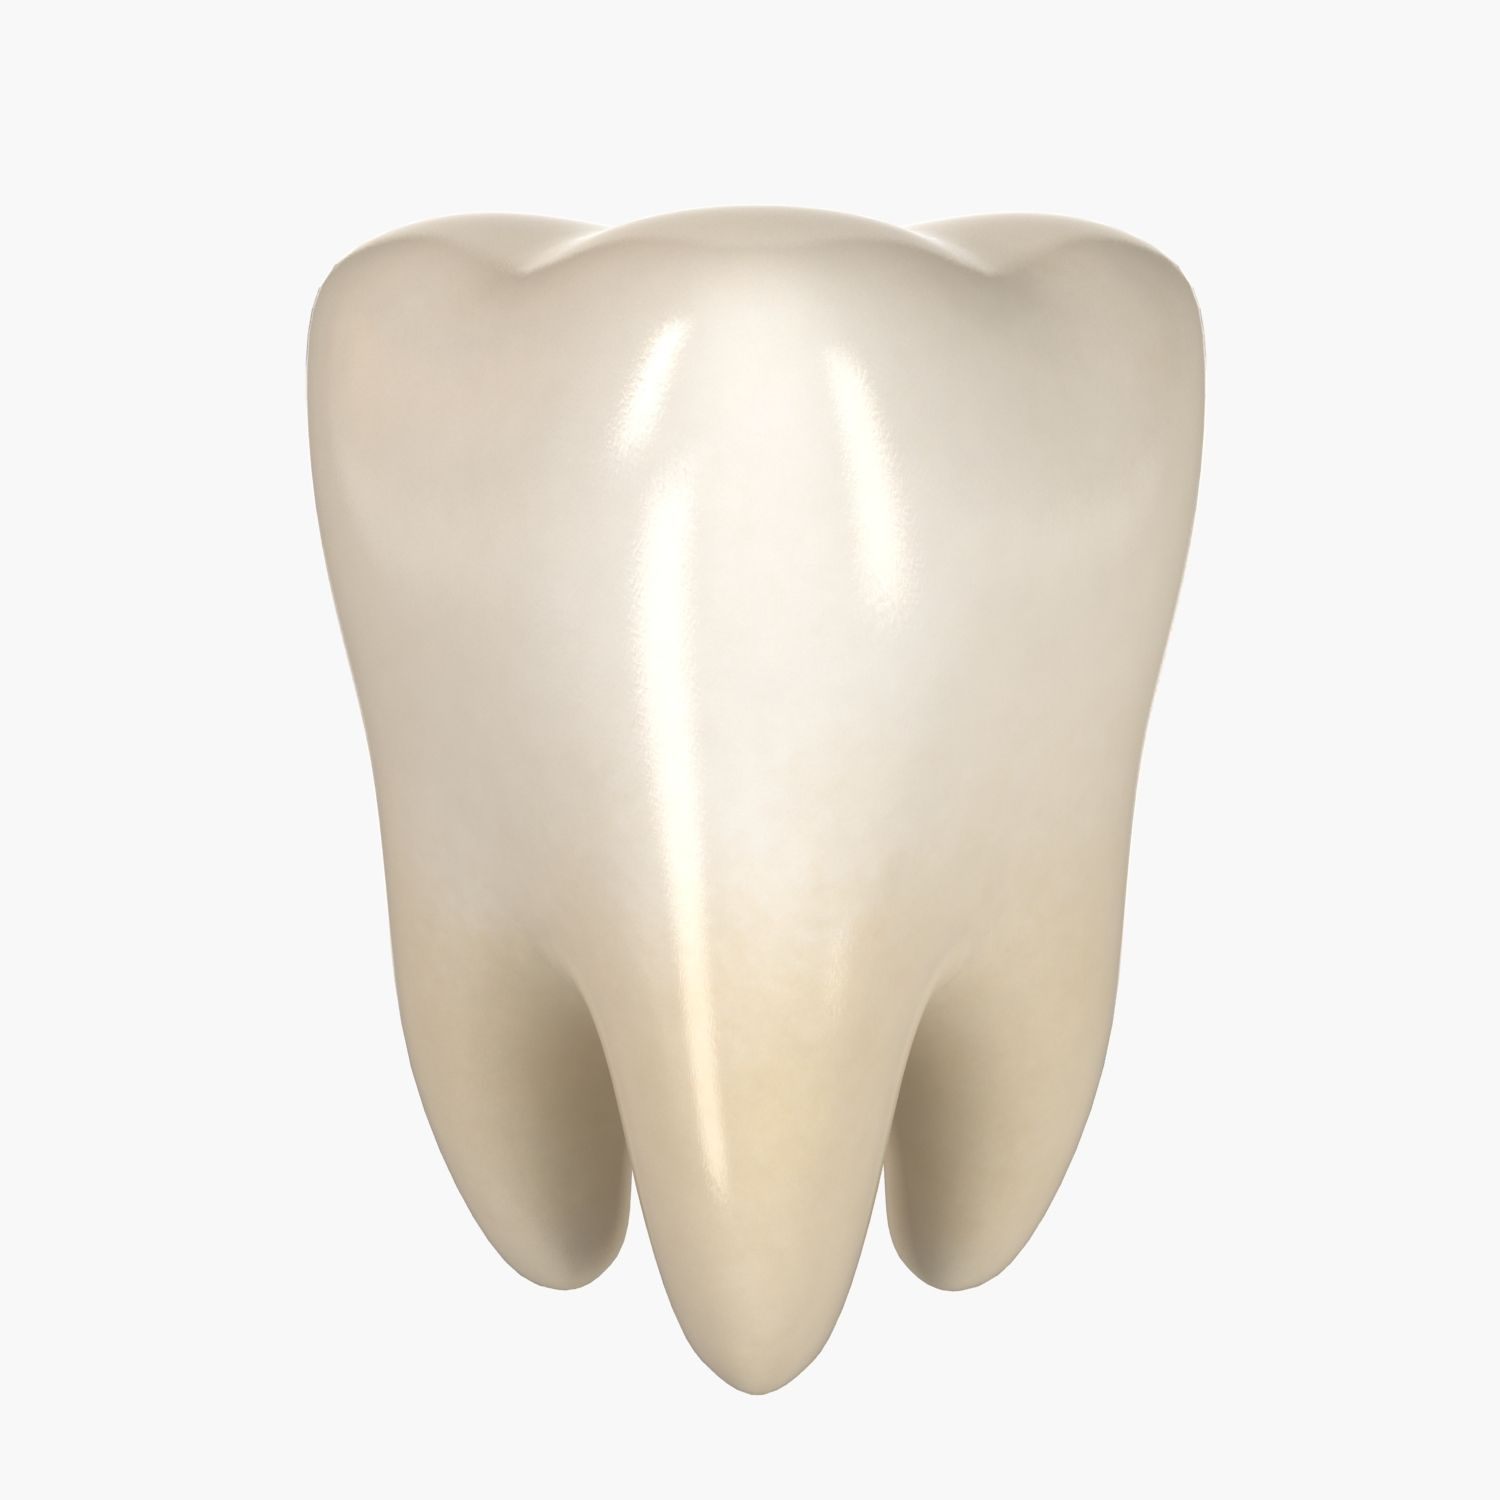 3d Model Teeth Molar Tooth Anatomy People Human Mouth